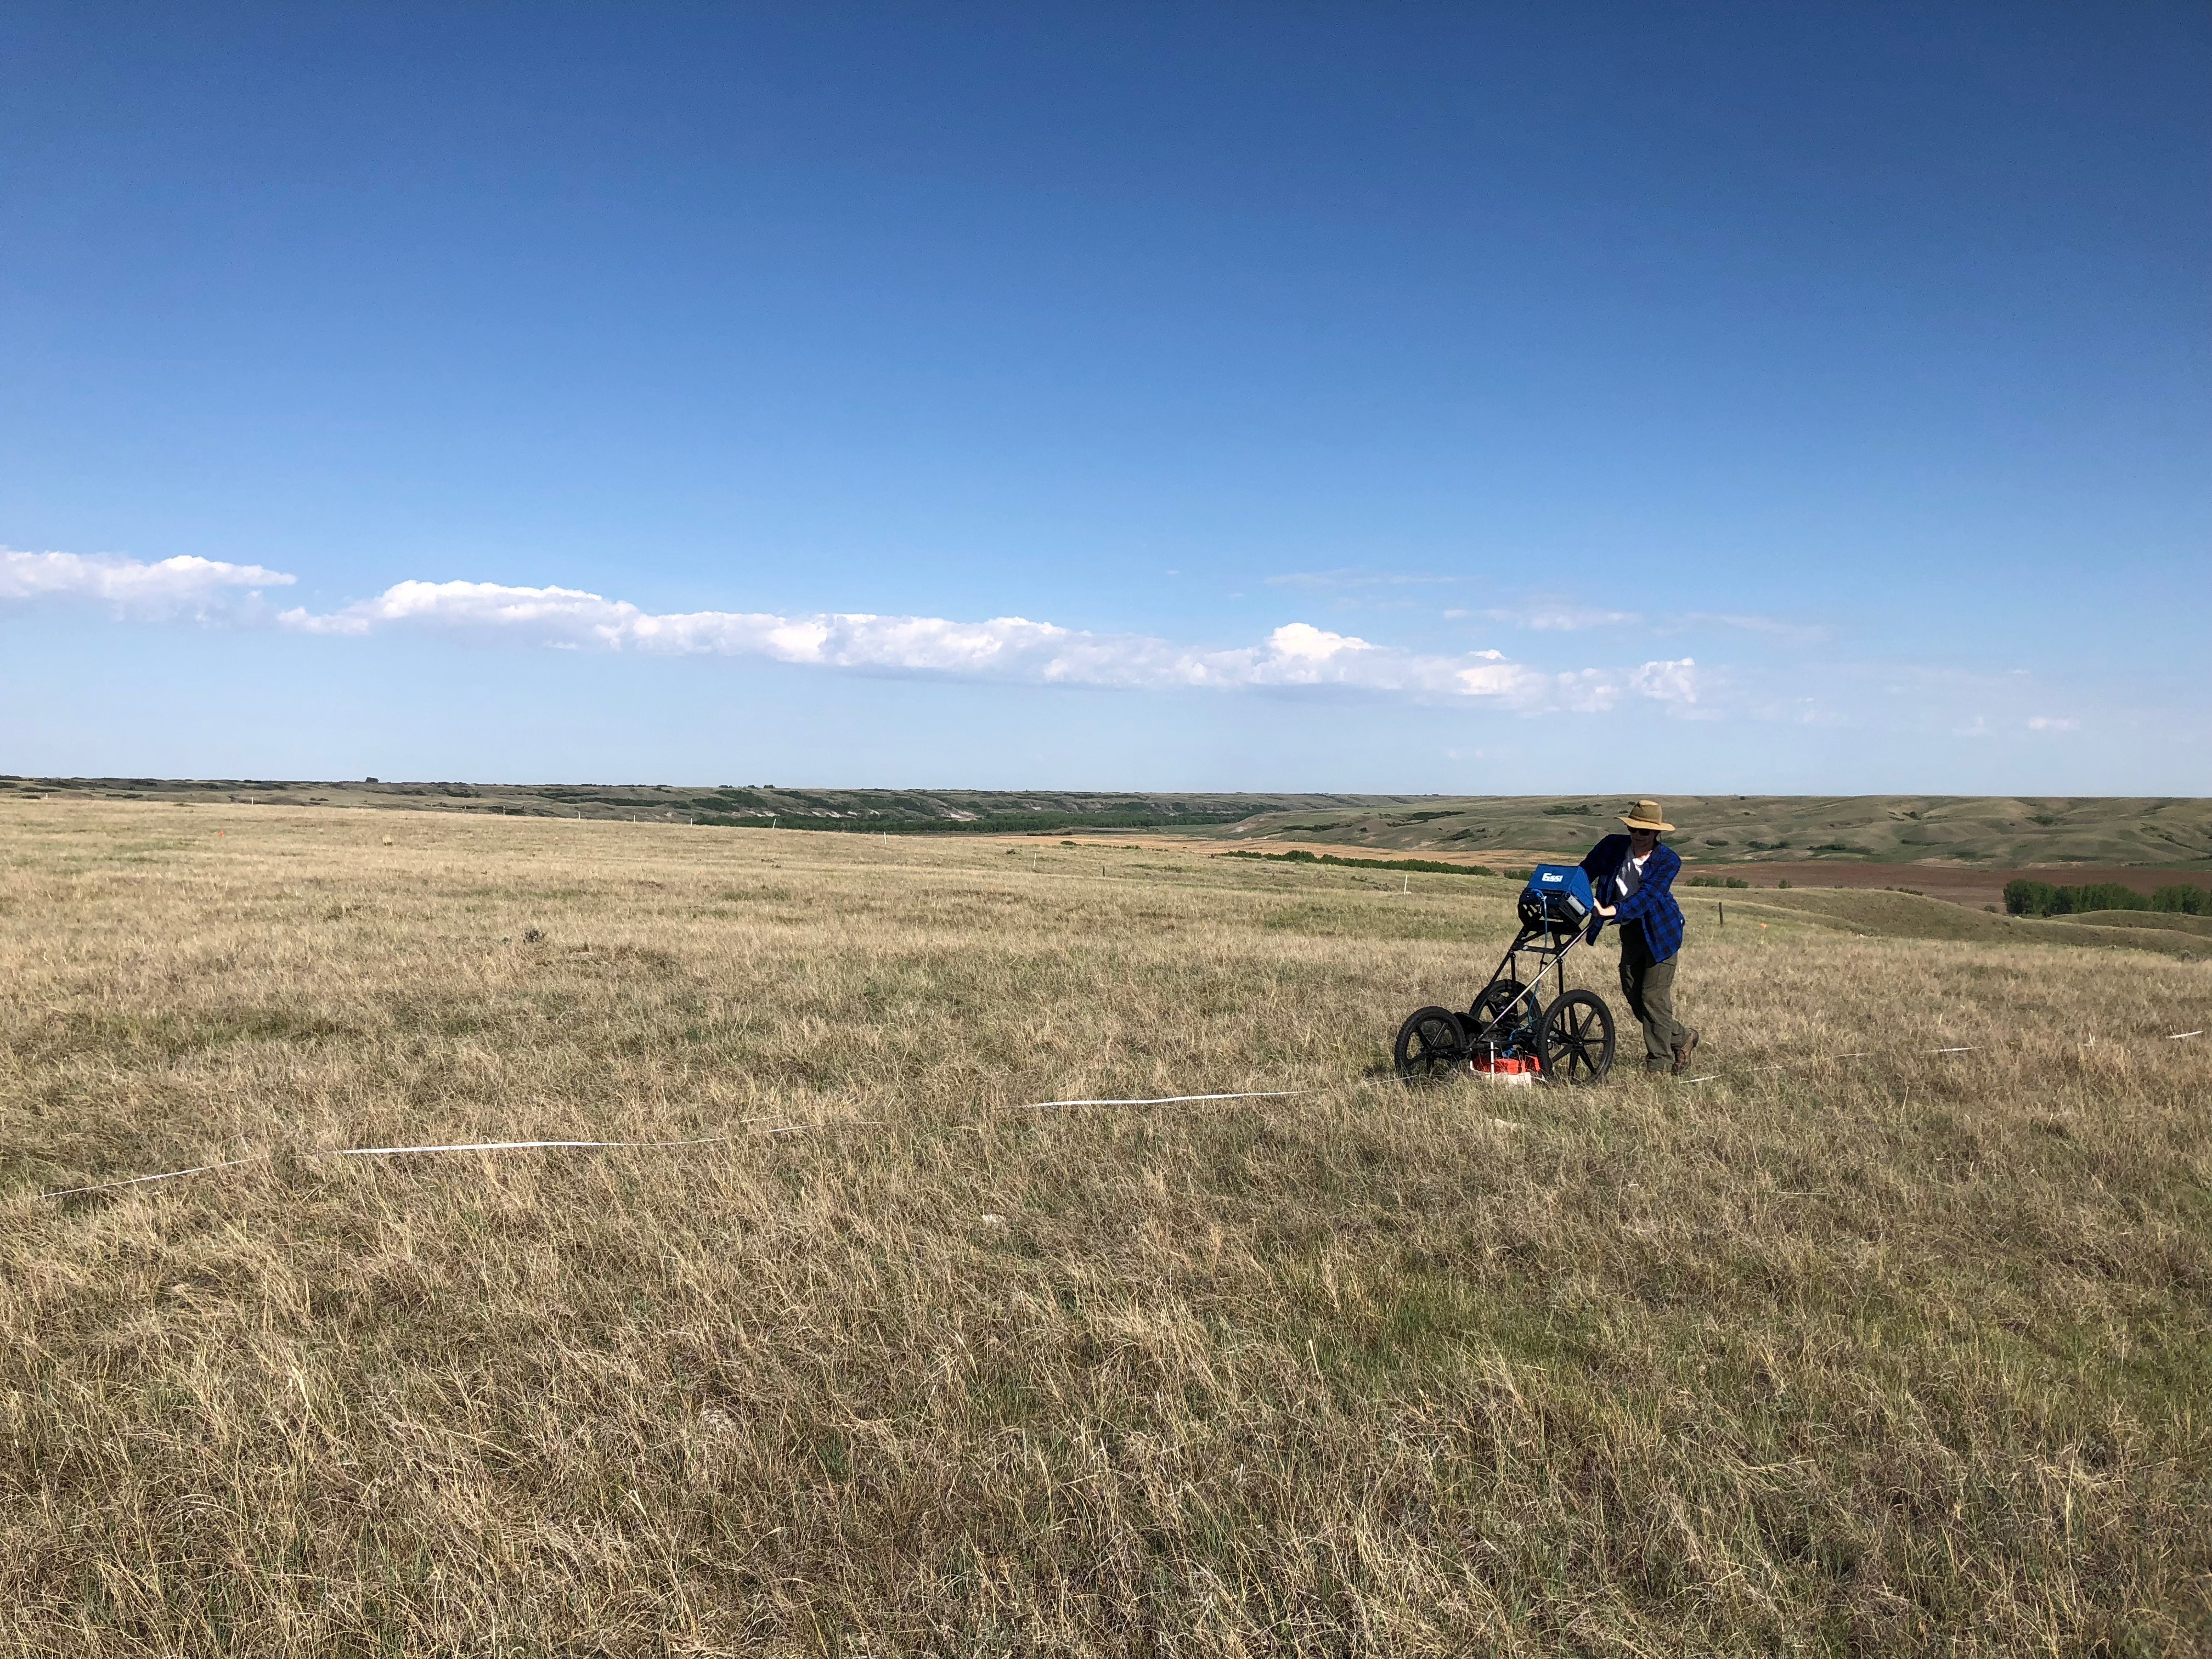 William Wadsworth using the GPR at the Mattheis Research Ranch in May. (Submitted)